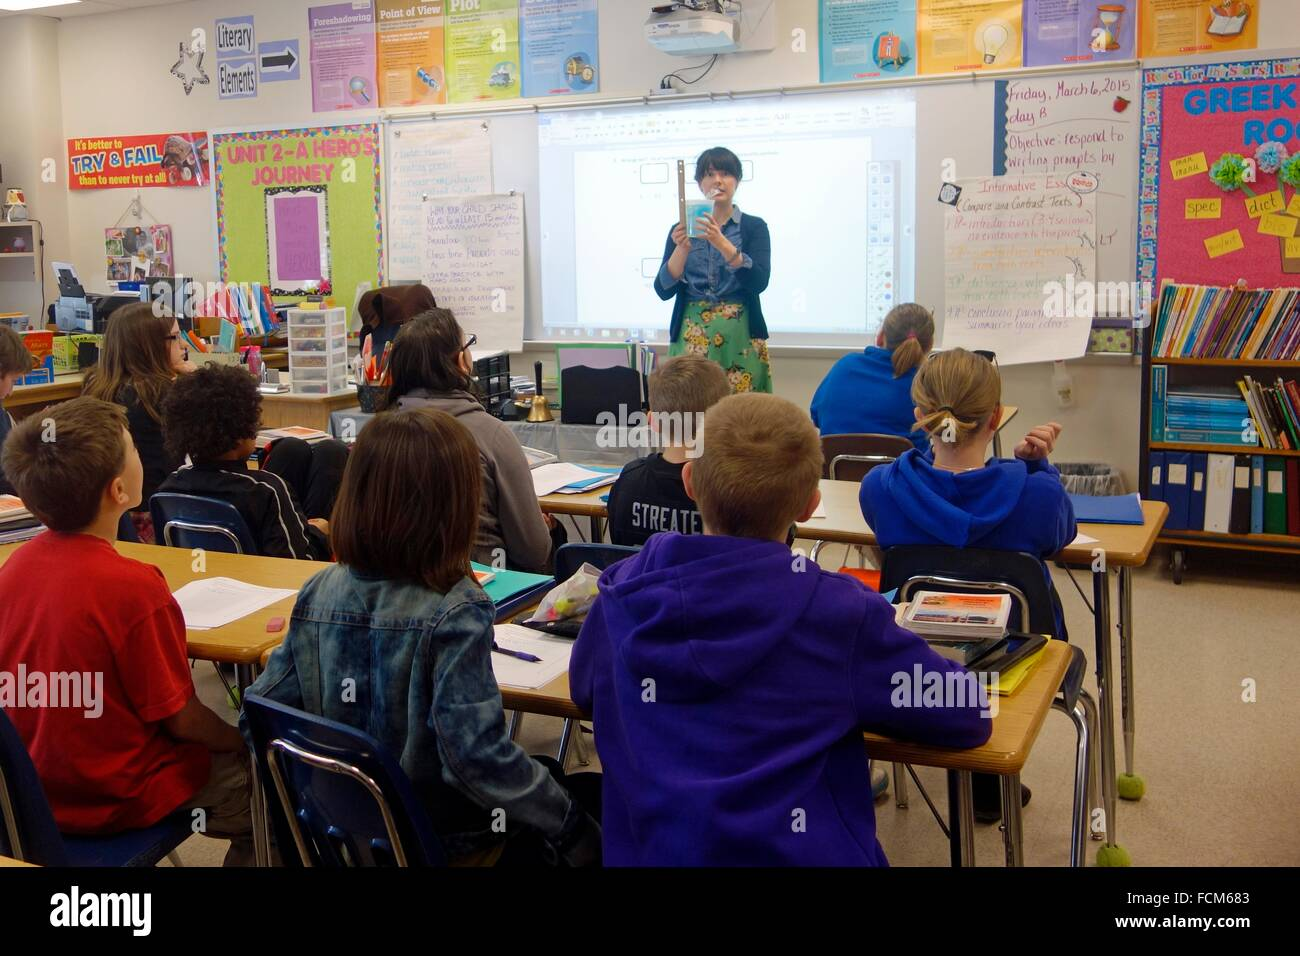 6th Grade Math Lesson, Wellsville, New York, United States Stock ...